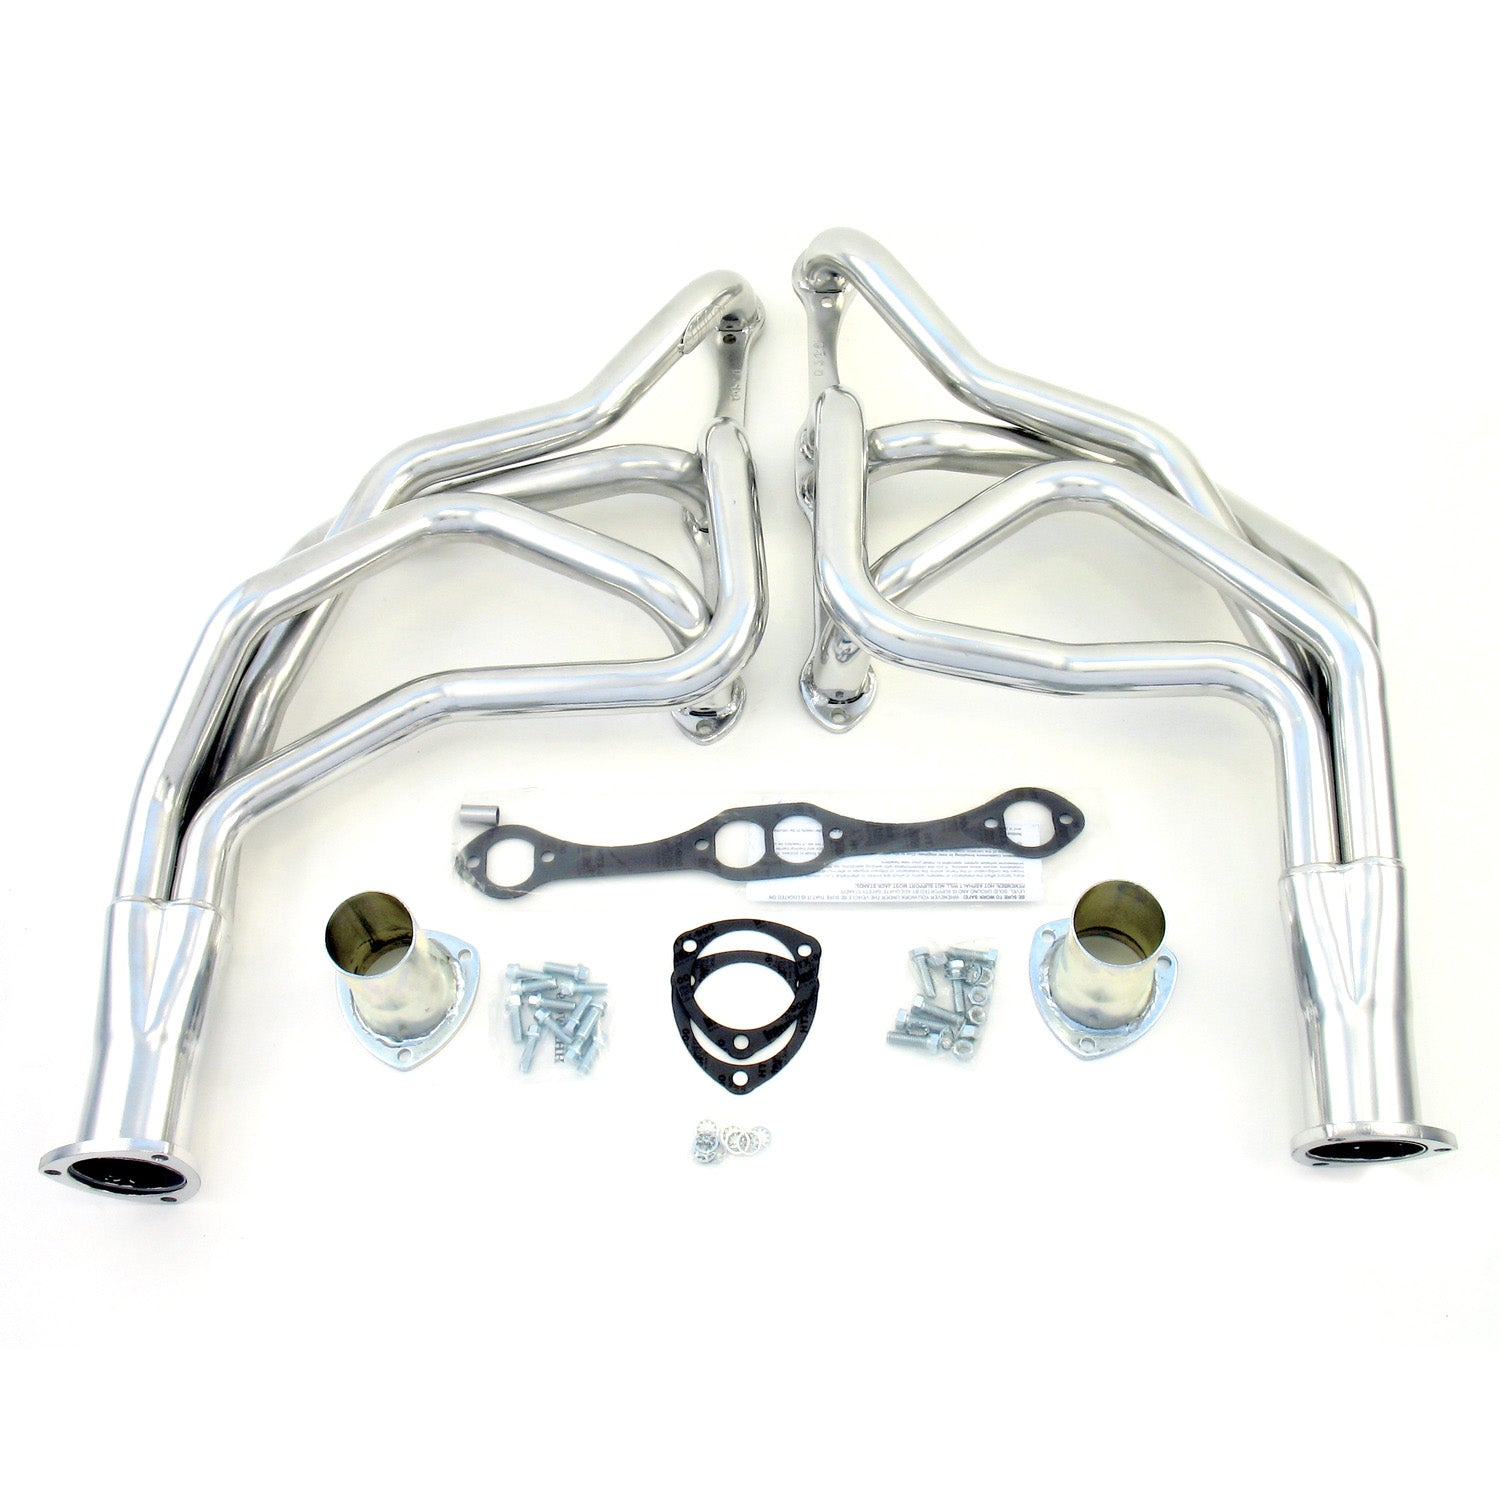 "Doug's Headers D310 1 5/8"" 4-Tube Full Length Header Chevrolet Truck Small Block Chevrolet 73-87 Metallic Ceramic Coating"